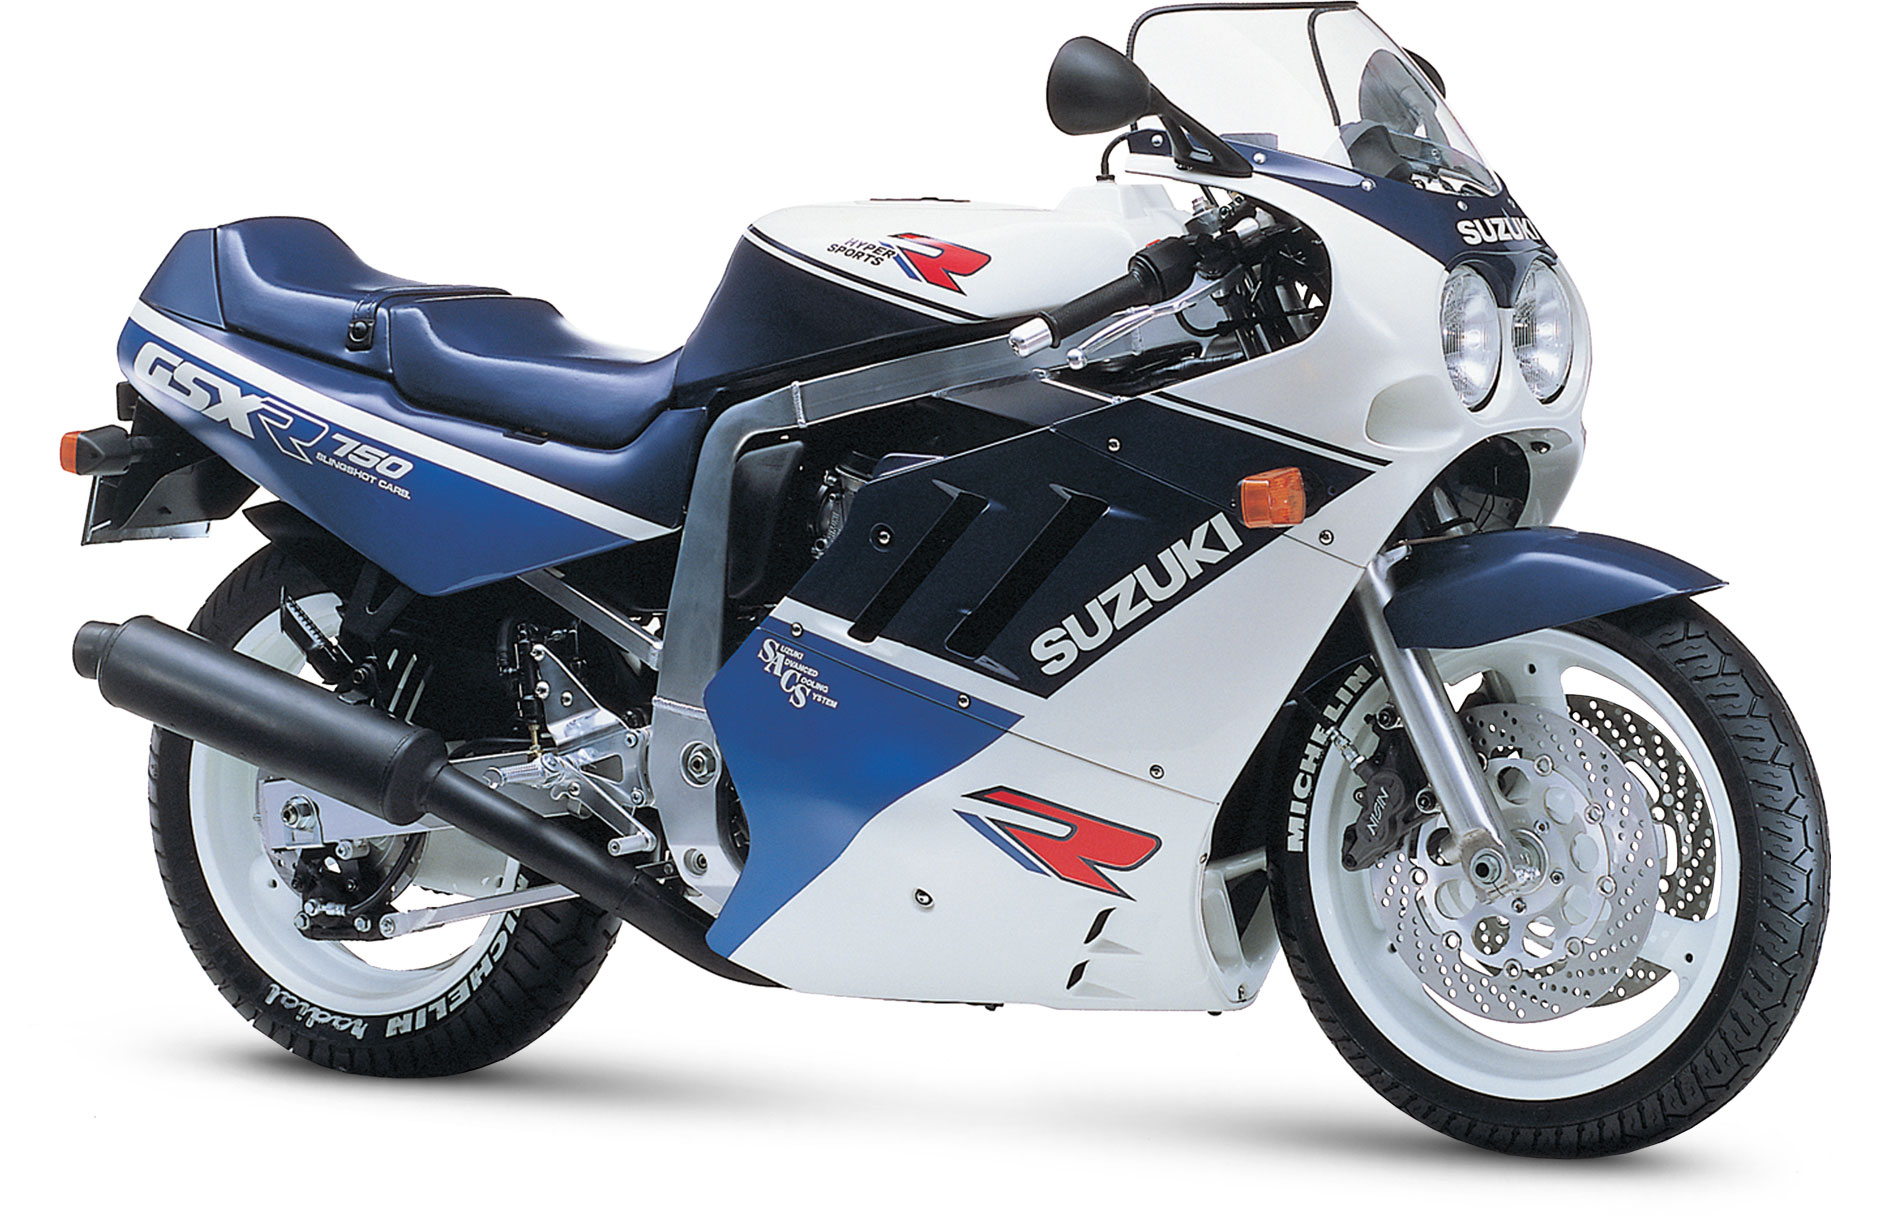 suzuki gsx r 750 1988 news information and specifications of suzuki motorcycles. Black Bedroom Furniture Sets. Home Design Ideas